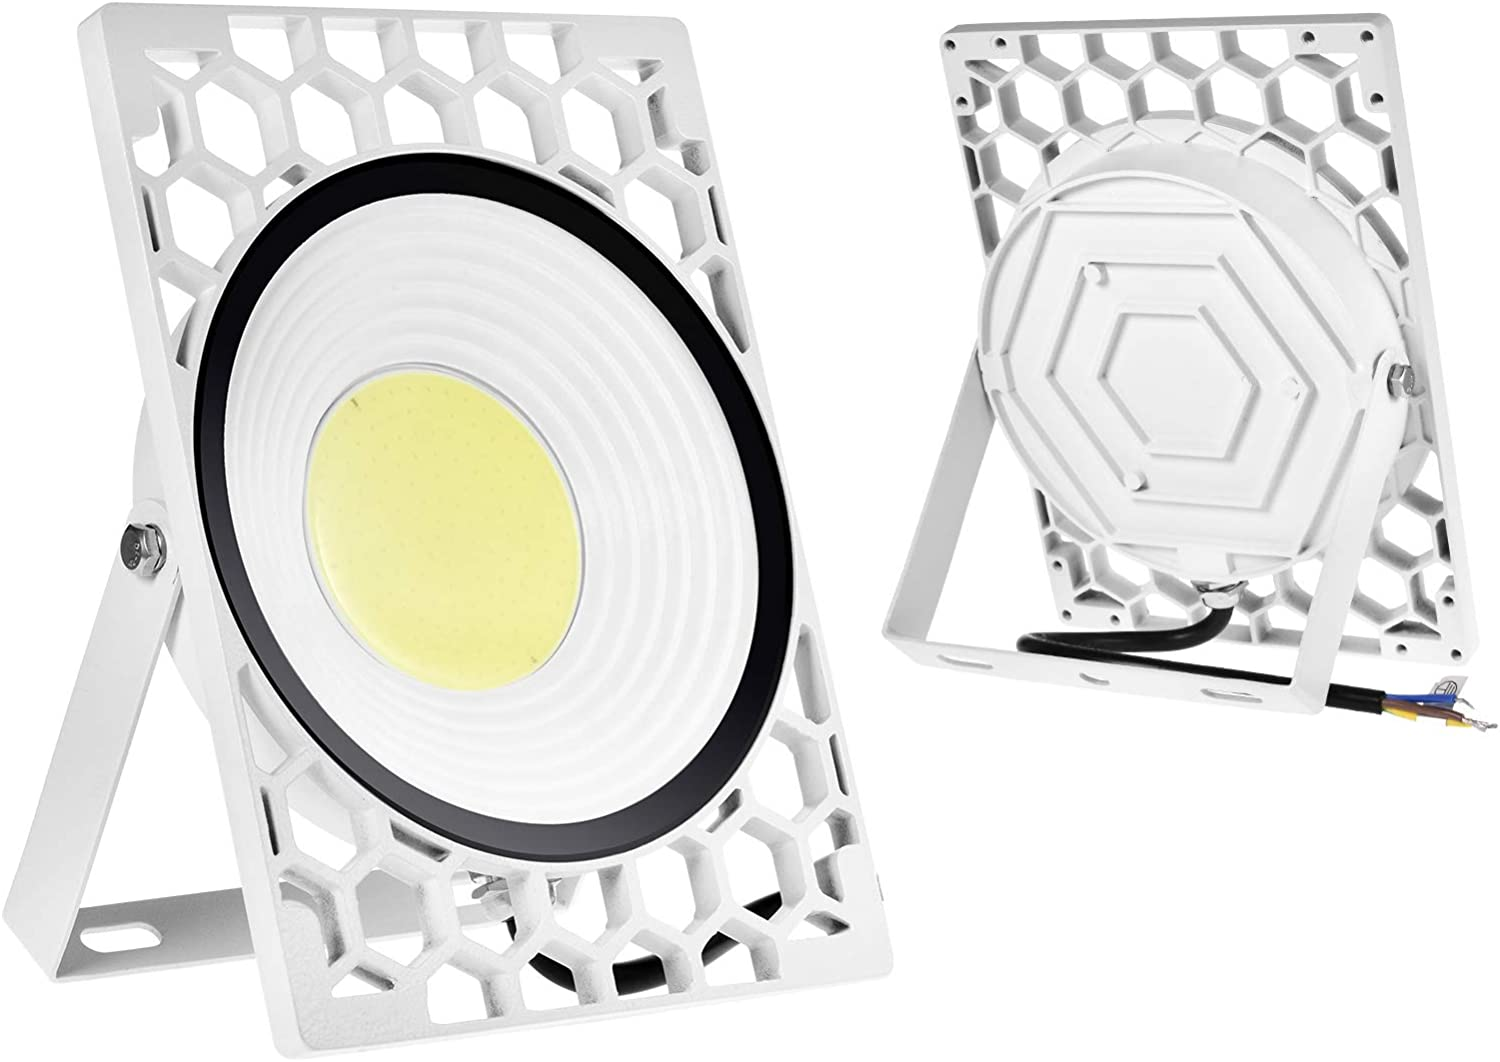 200W LED Flood Light Super Bright Bombing free shipping Waterproof Floodlight O Max 62% OFF IP65